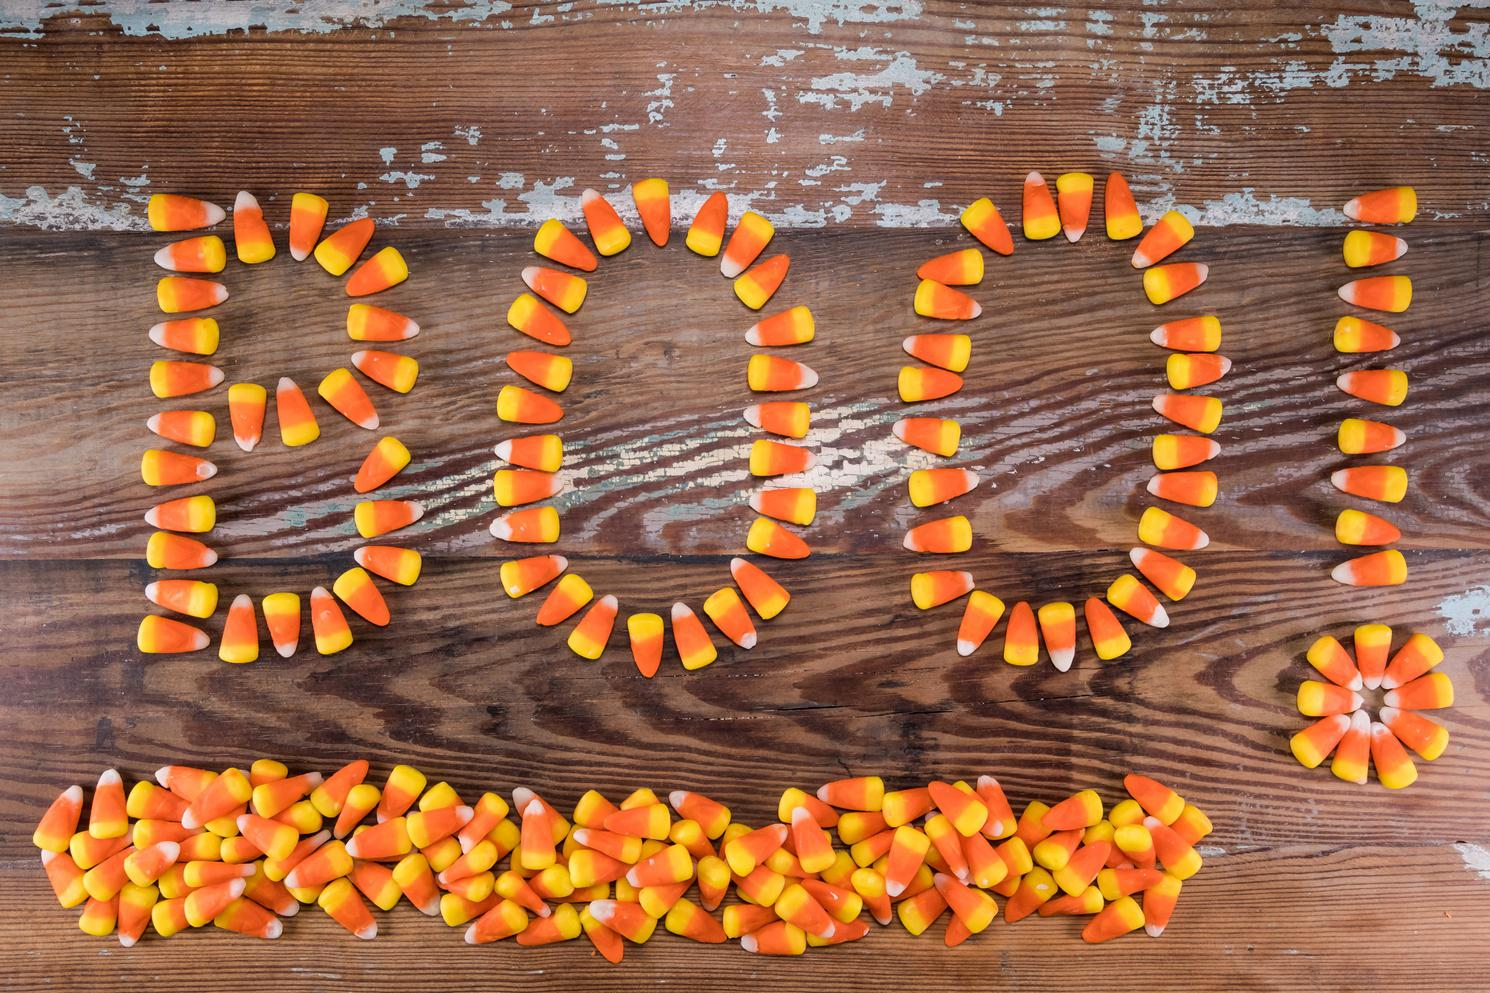 Candy Corn Boo! With Pile Below